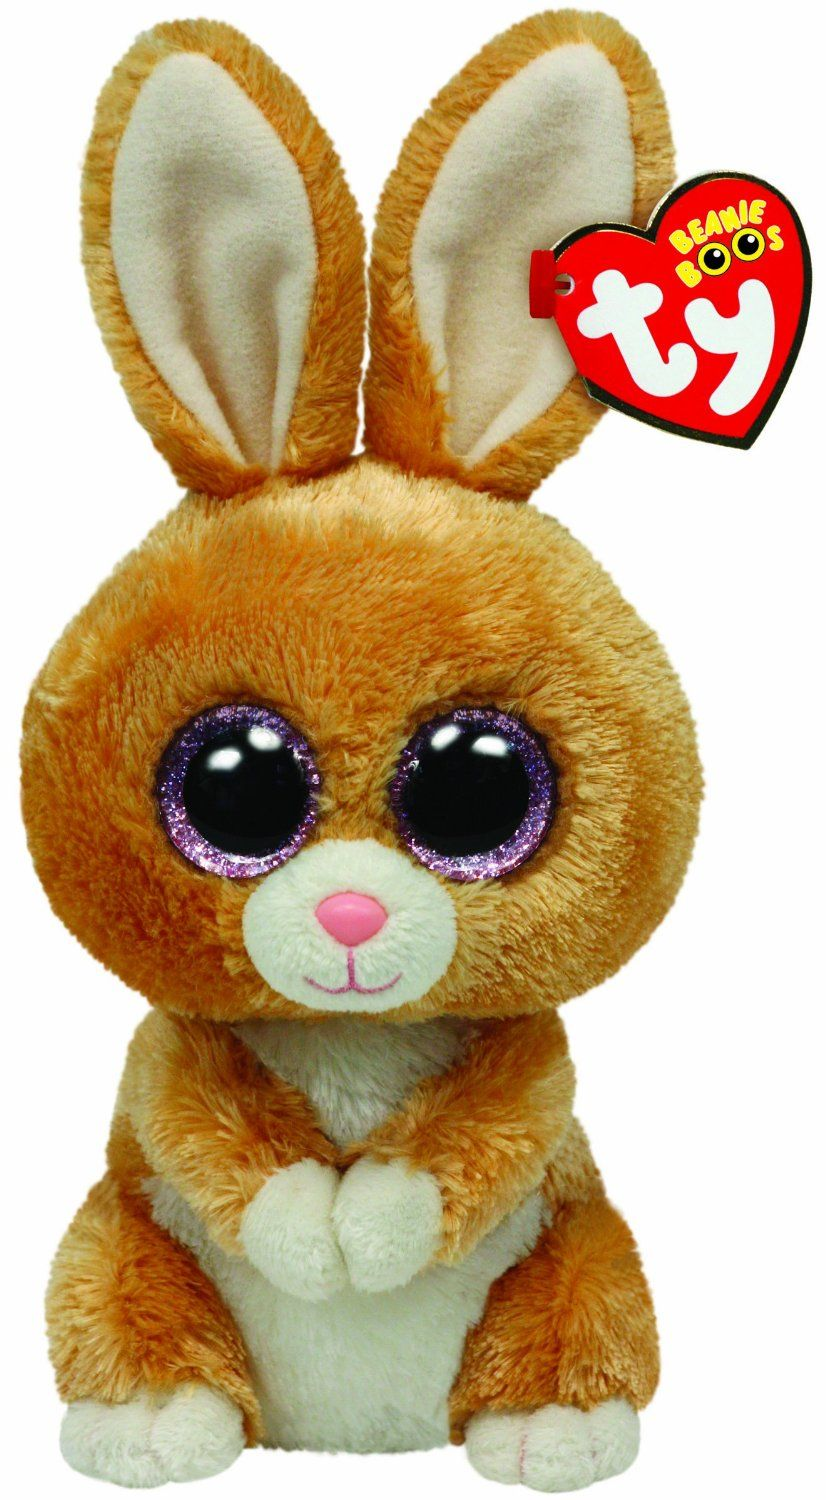 a7eee60d40b Ty Beanie Boos - Carrots the Rabbit (Exclusive)  Amazon.ca  Toys   Games